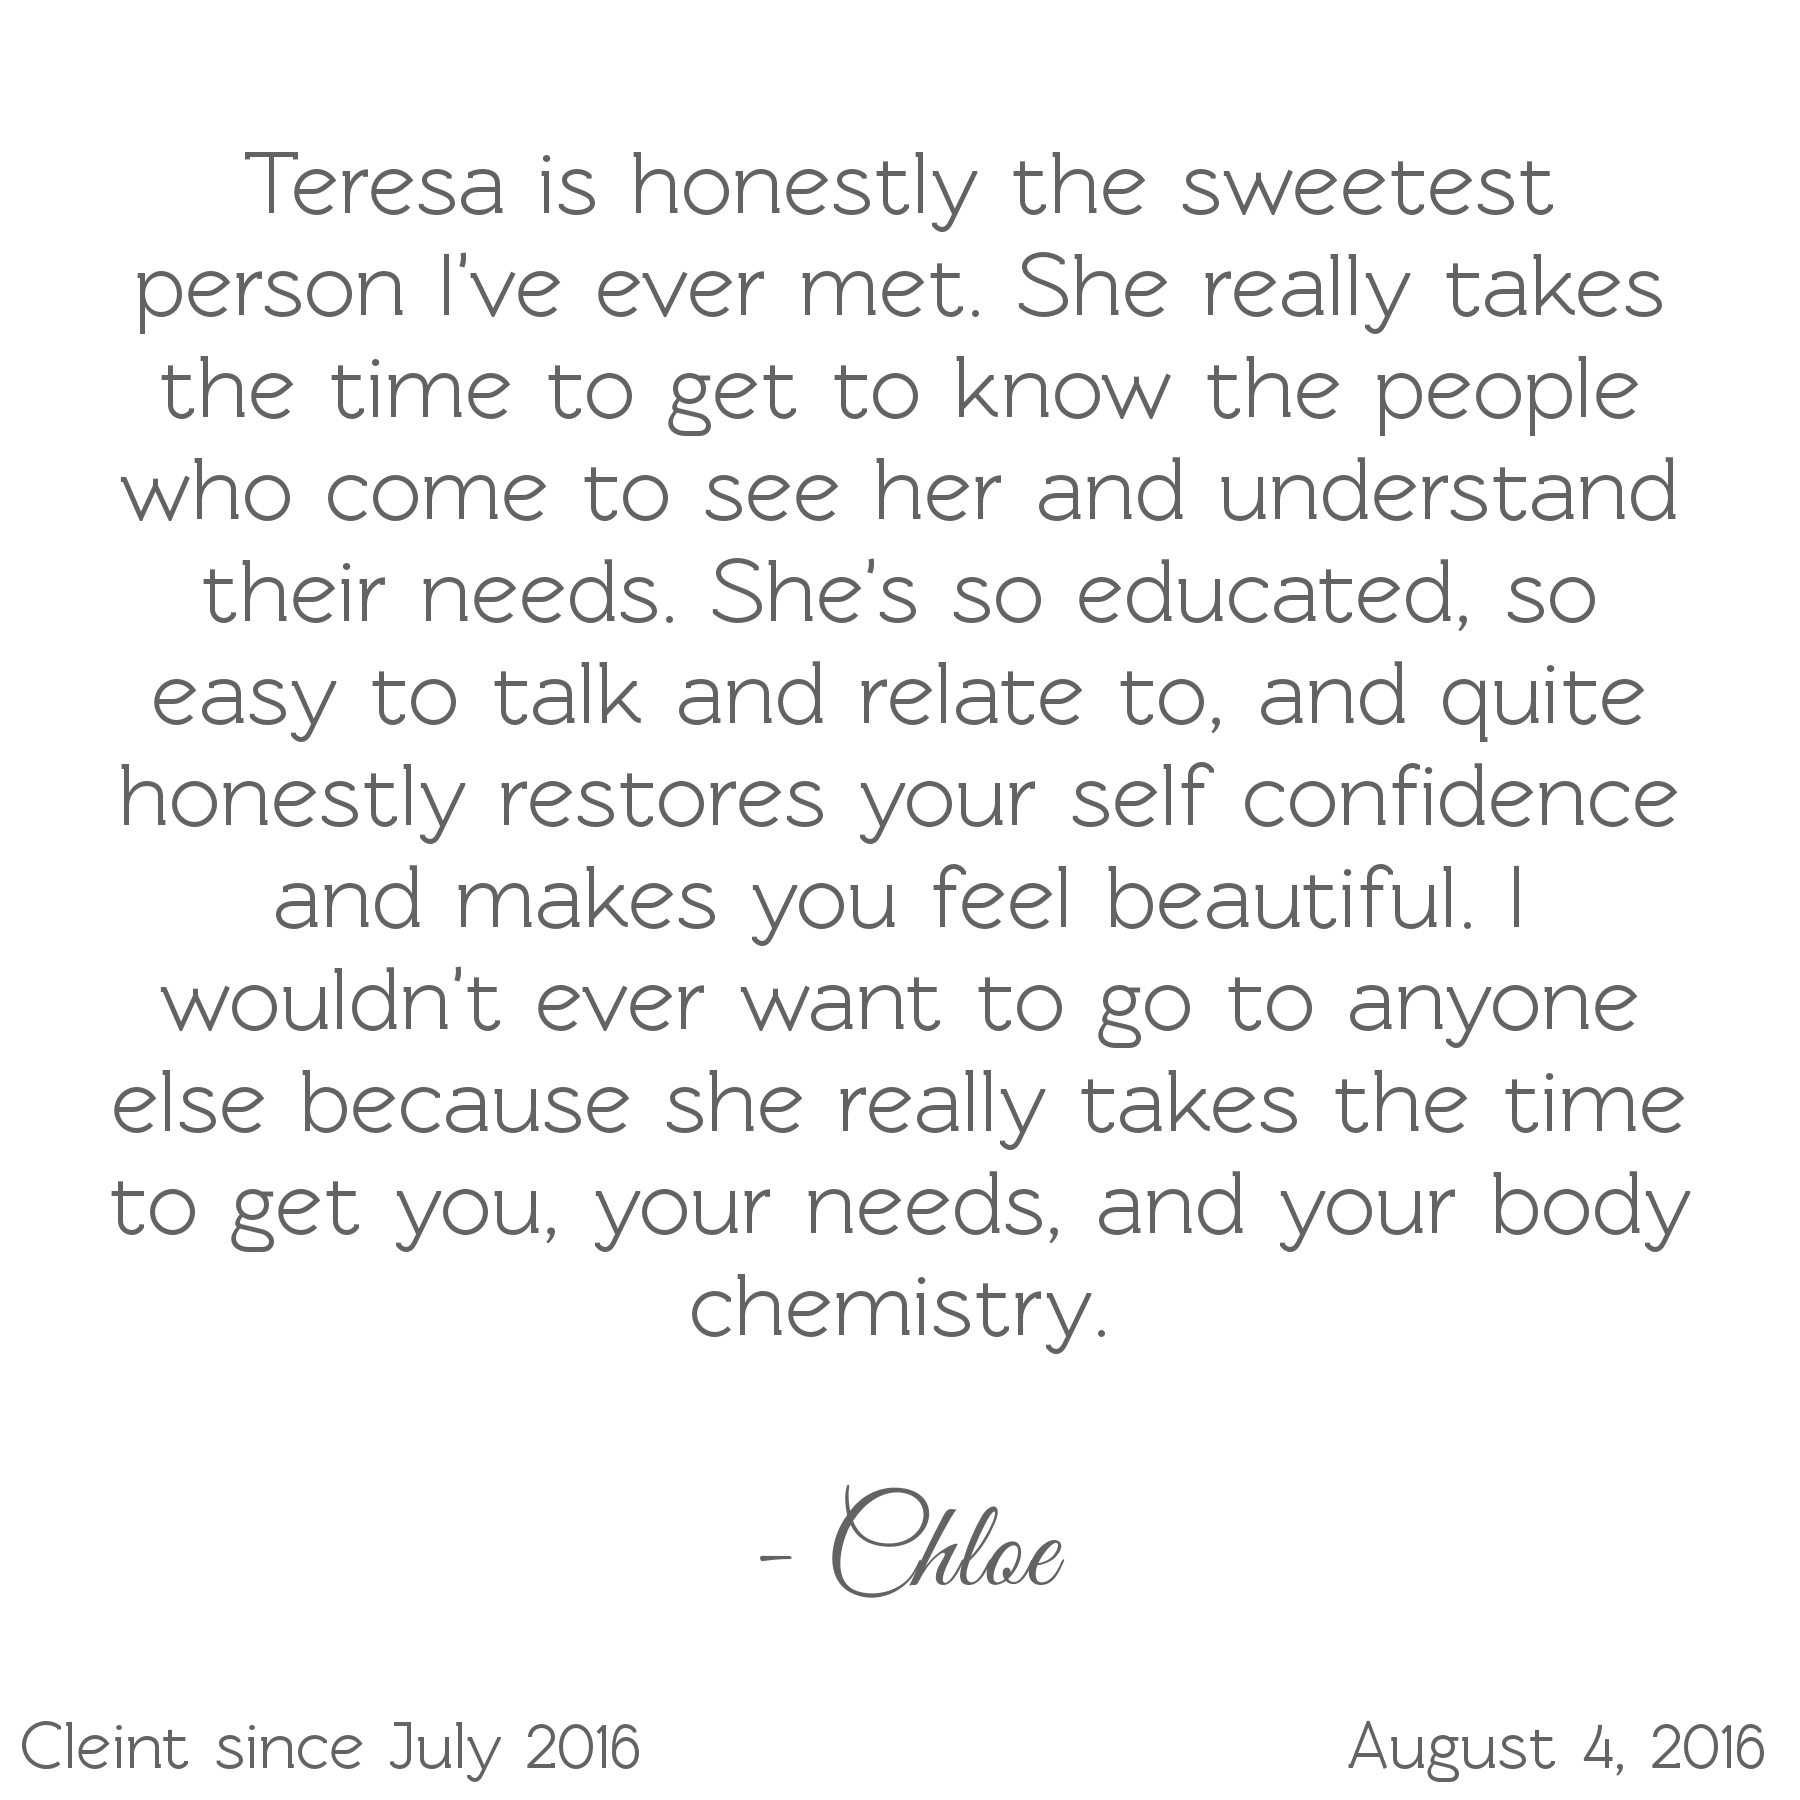 Teresa is the sweetest person. Takes the time to understand your needs. She's educated, easy to talk to, restores self-confidence & makes you feel beautiful. I wouldn't want to go to anyone else-Chloe